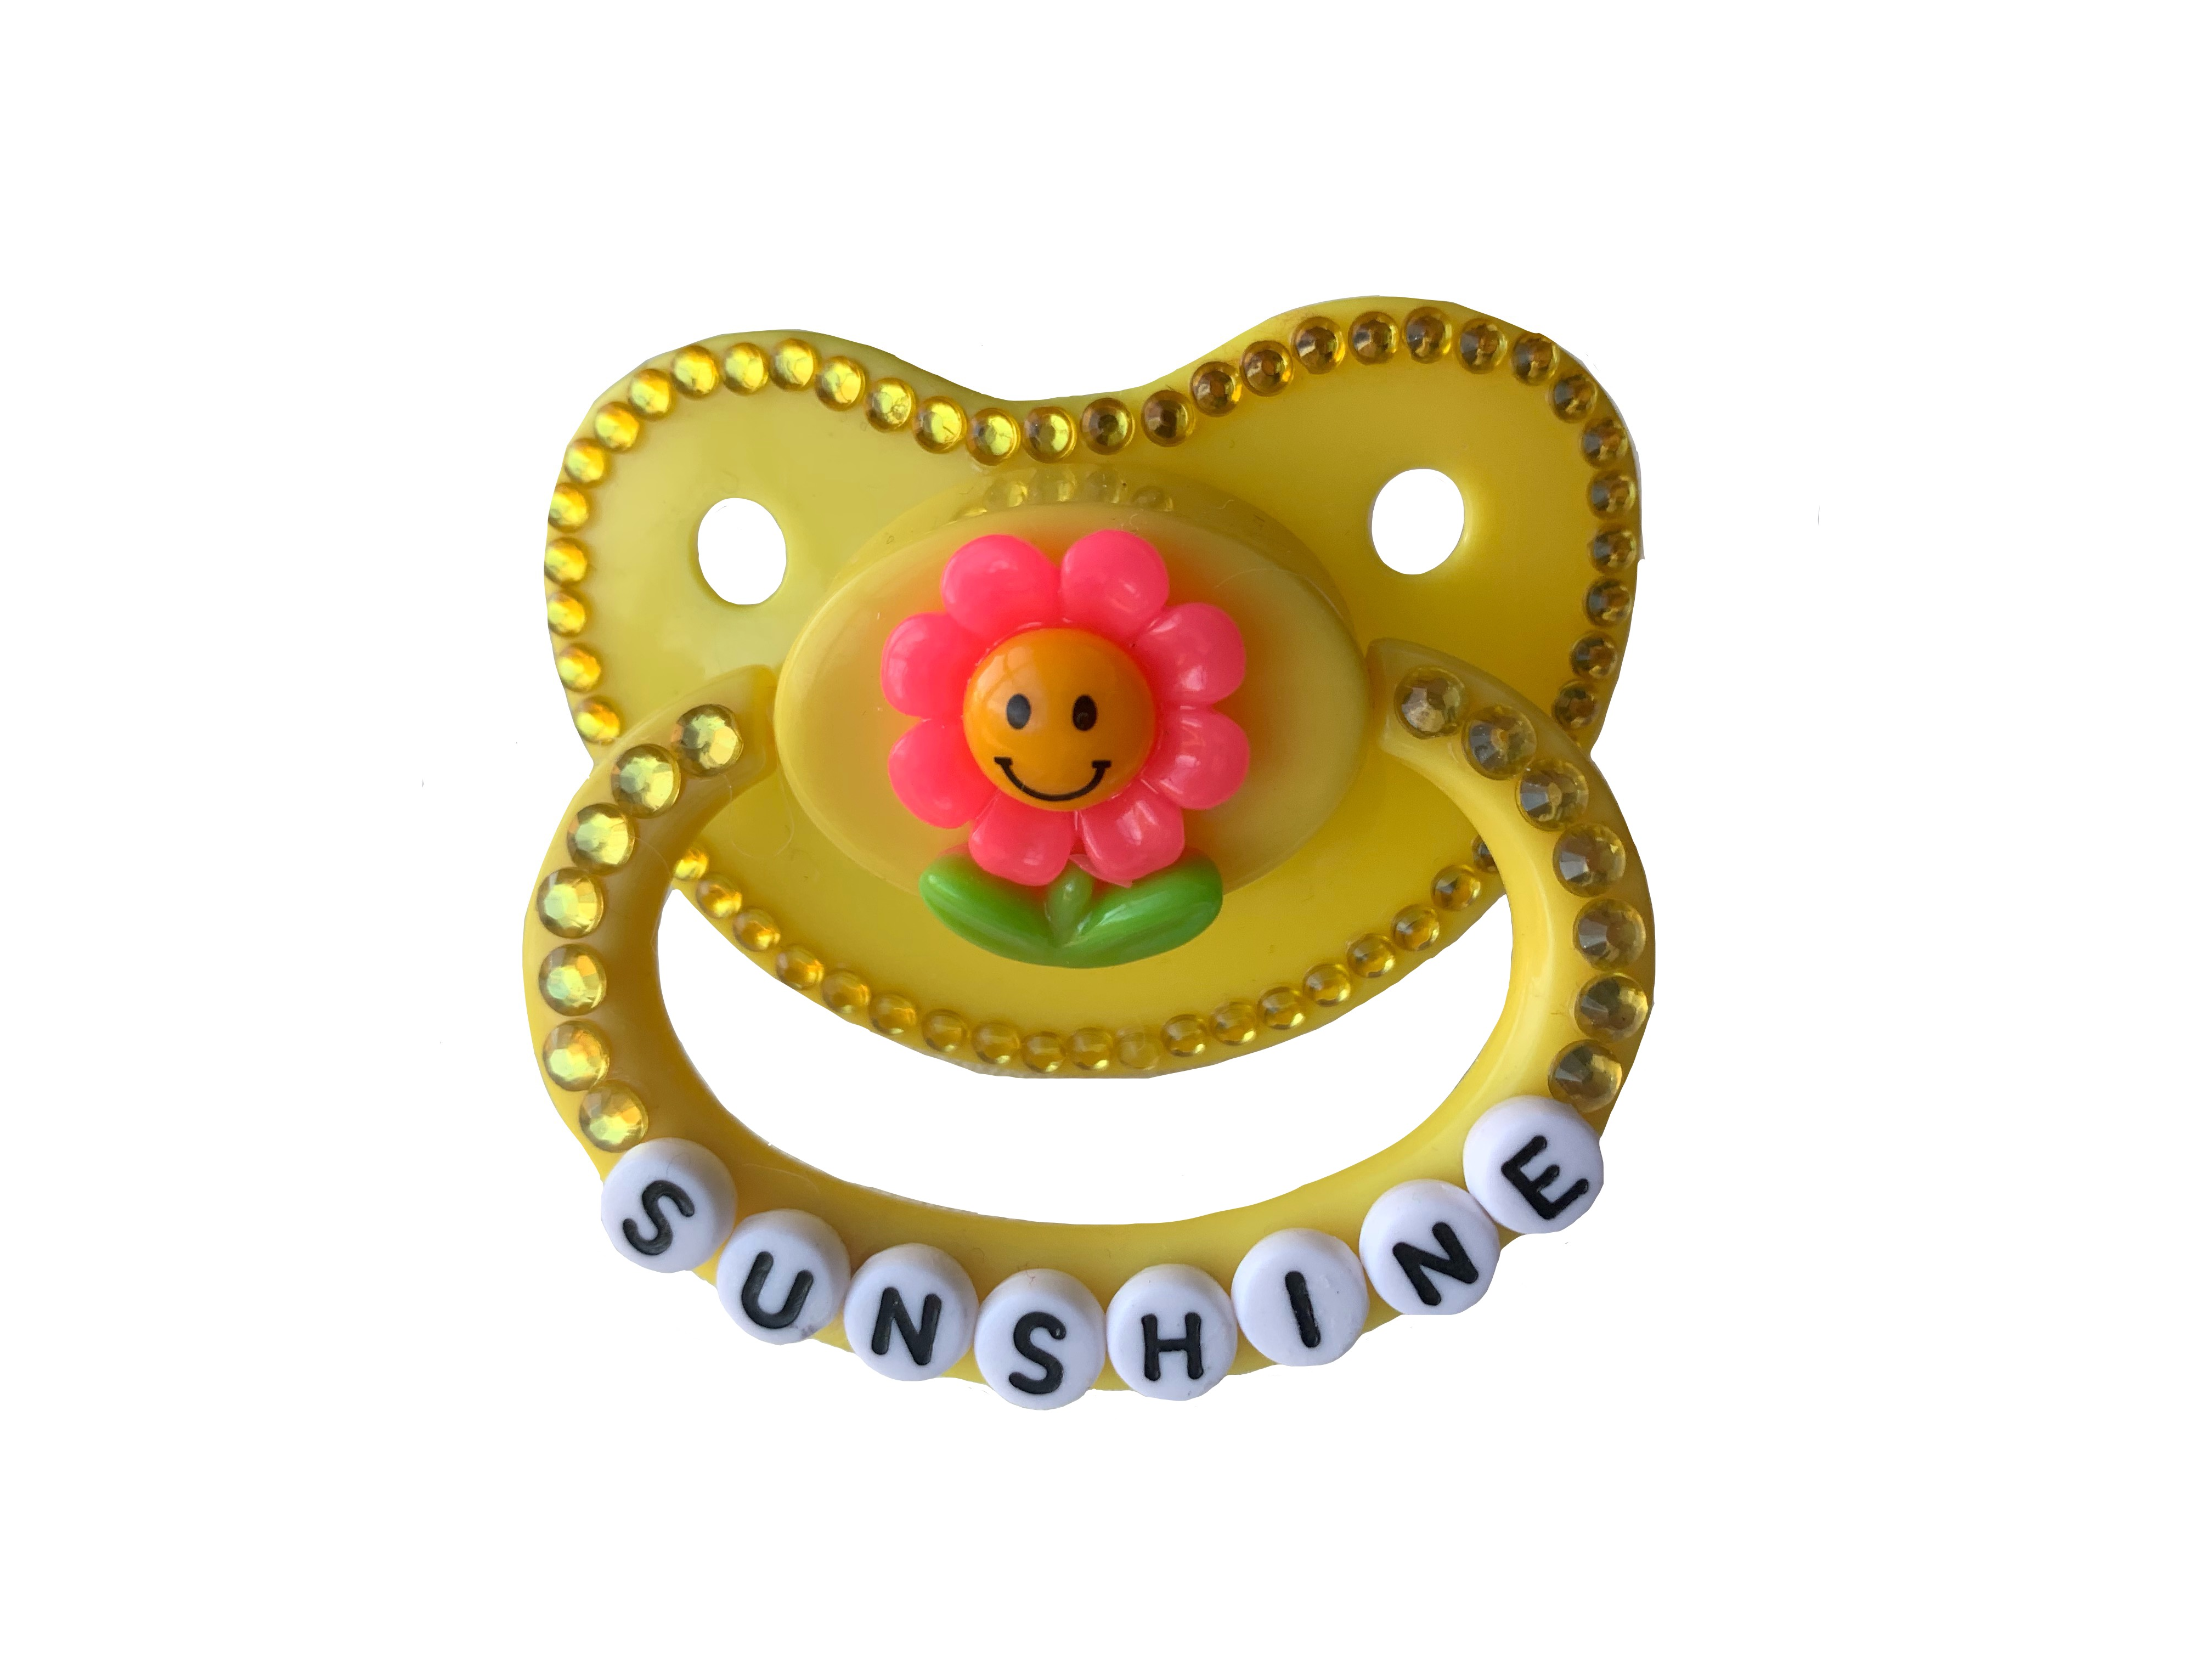 * Sunshine * Adult Pacifier DDLG ABDL CGL Age Regression Little Space Dummy